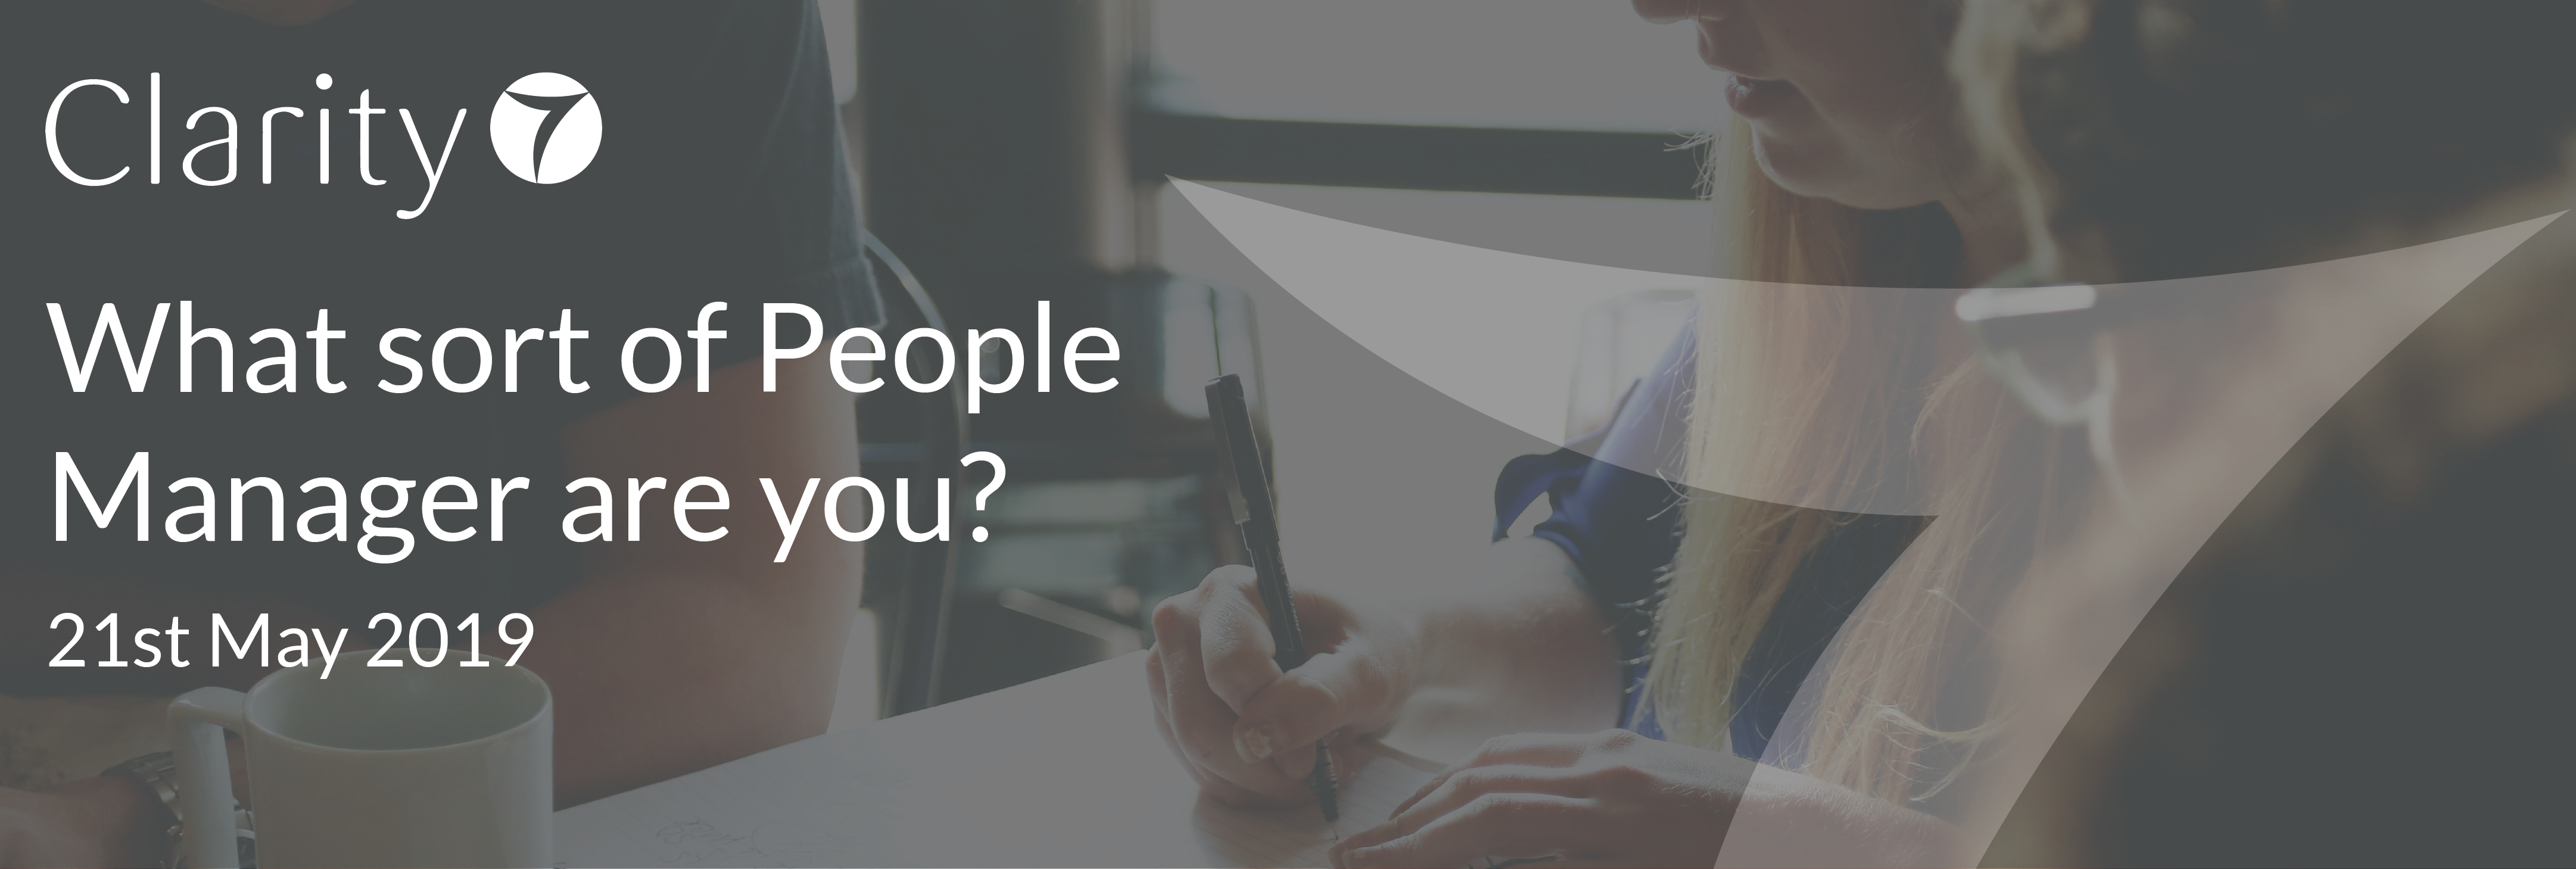 What sort of People Manager are you?